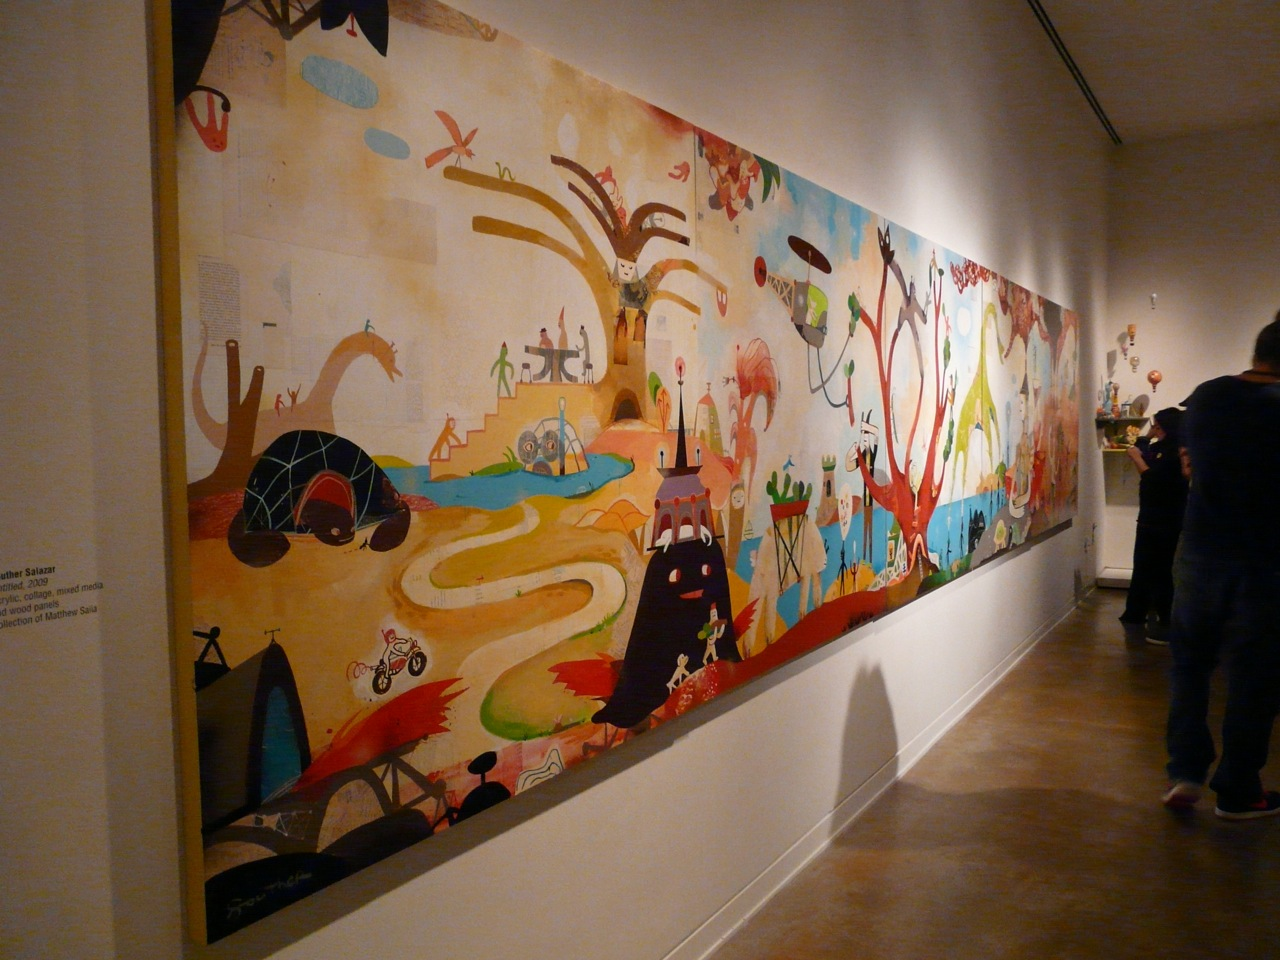 Largest Salazar painting we have ever seen